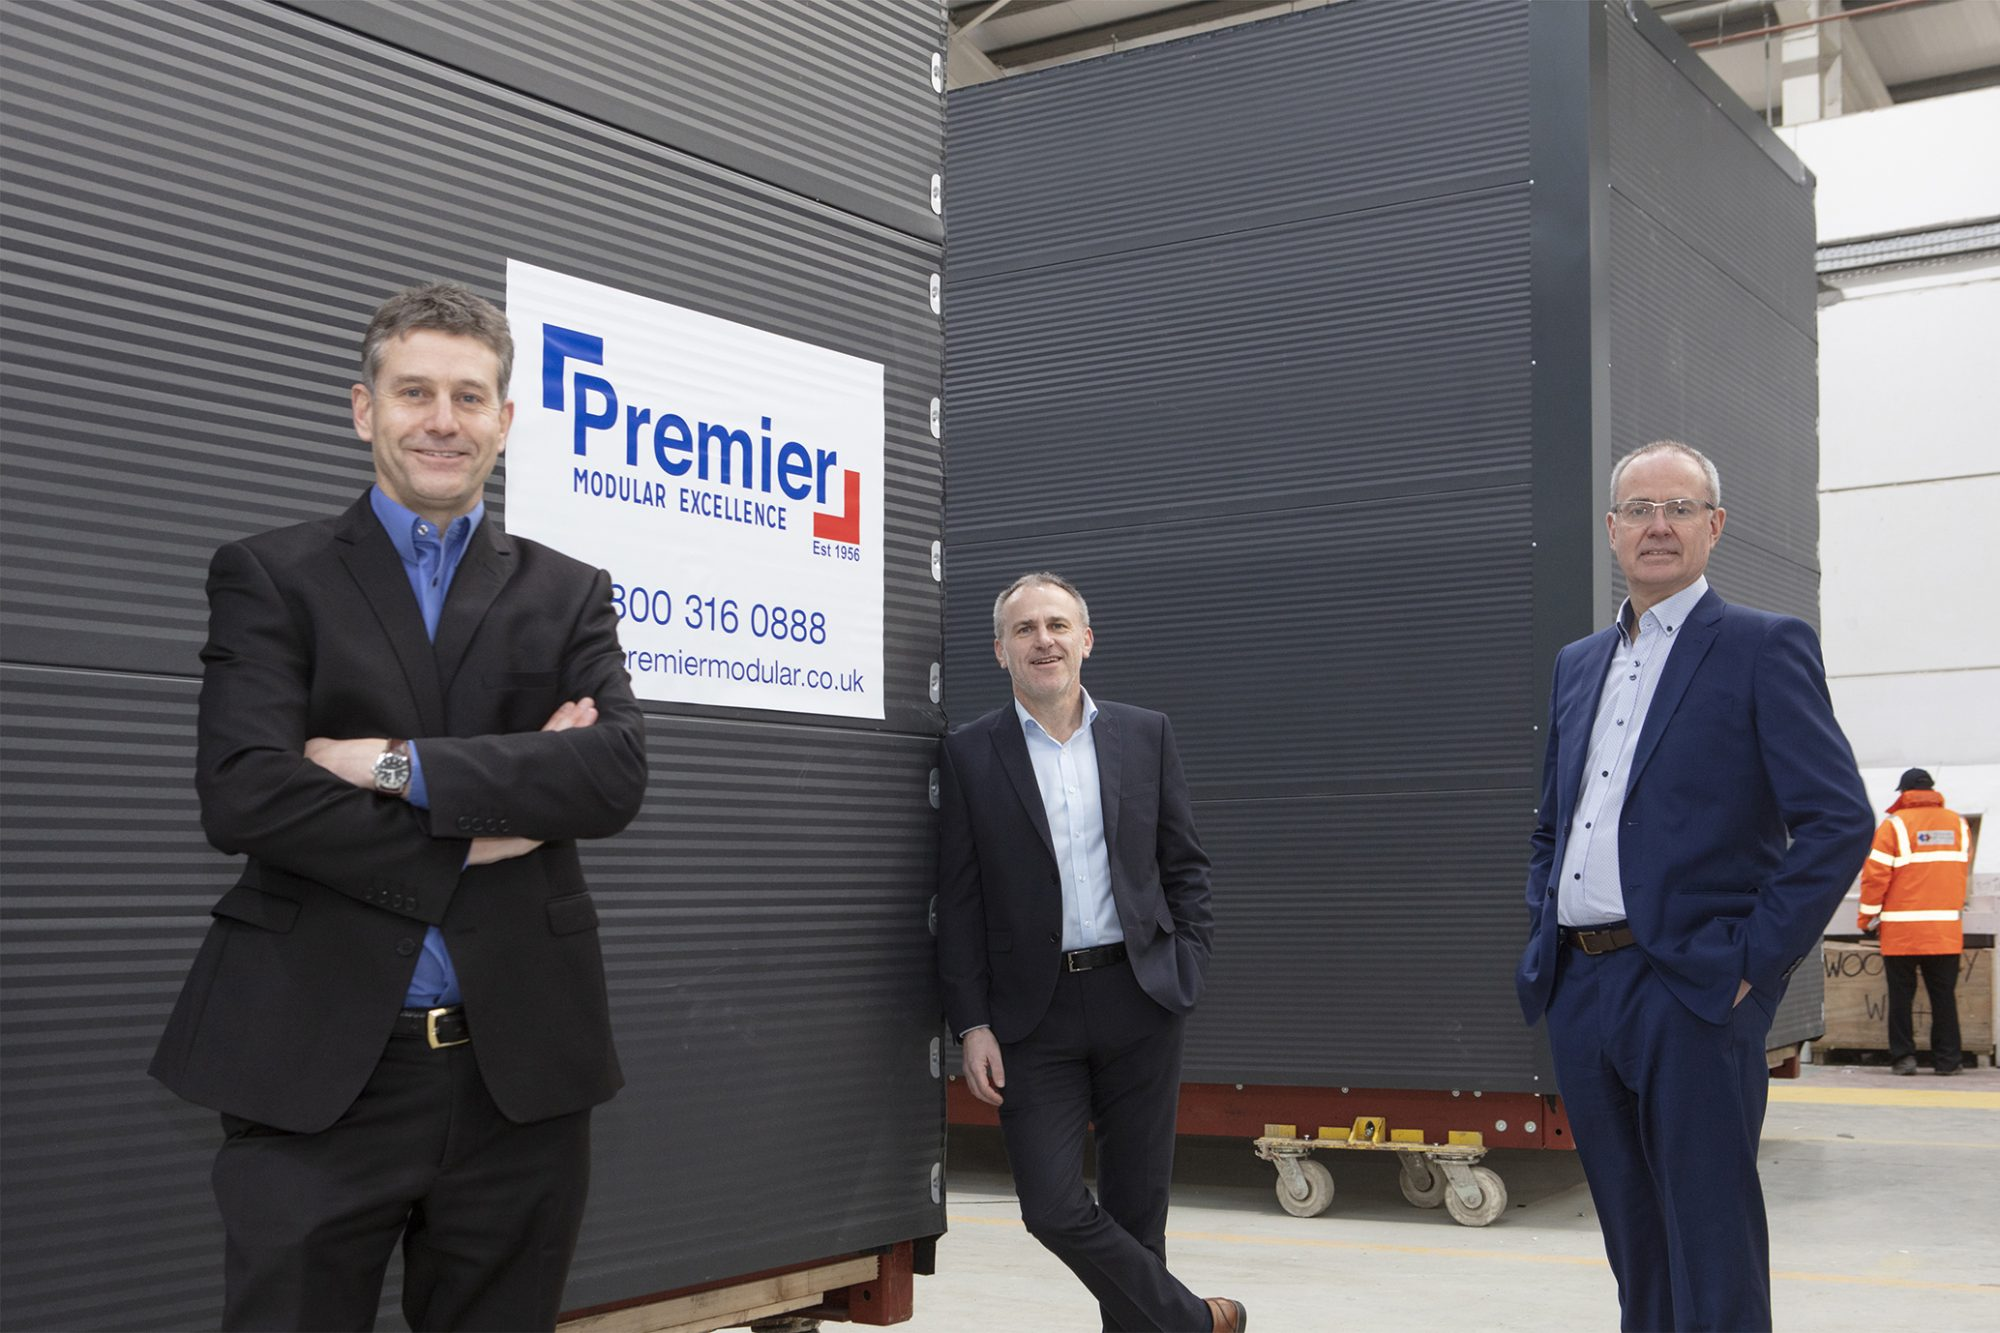 Cabot Square Capital acquires majority stake in Premier Modular